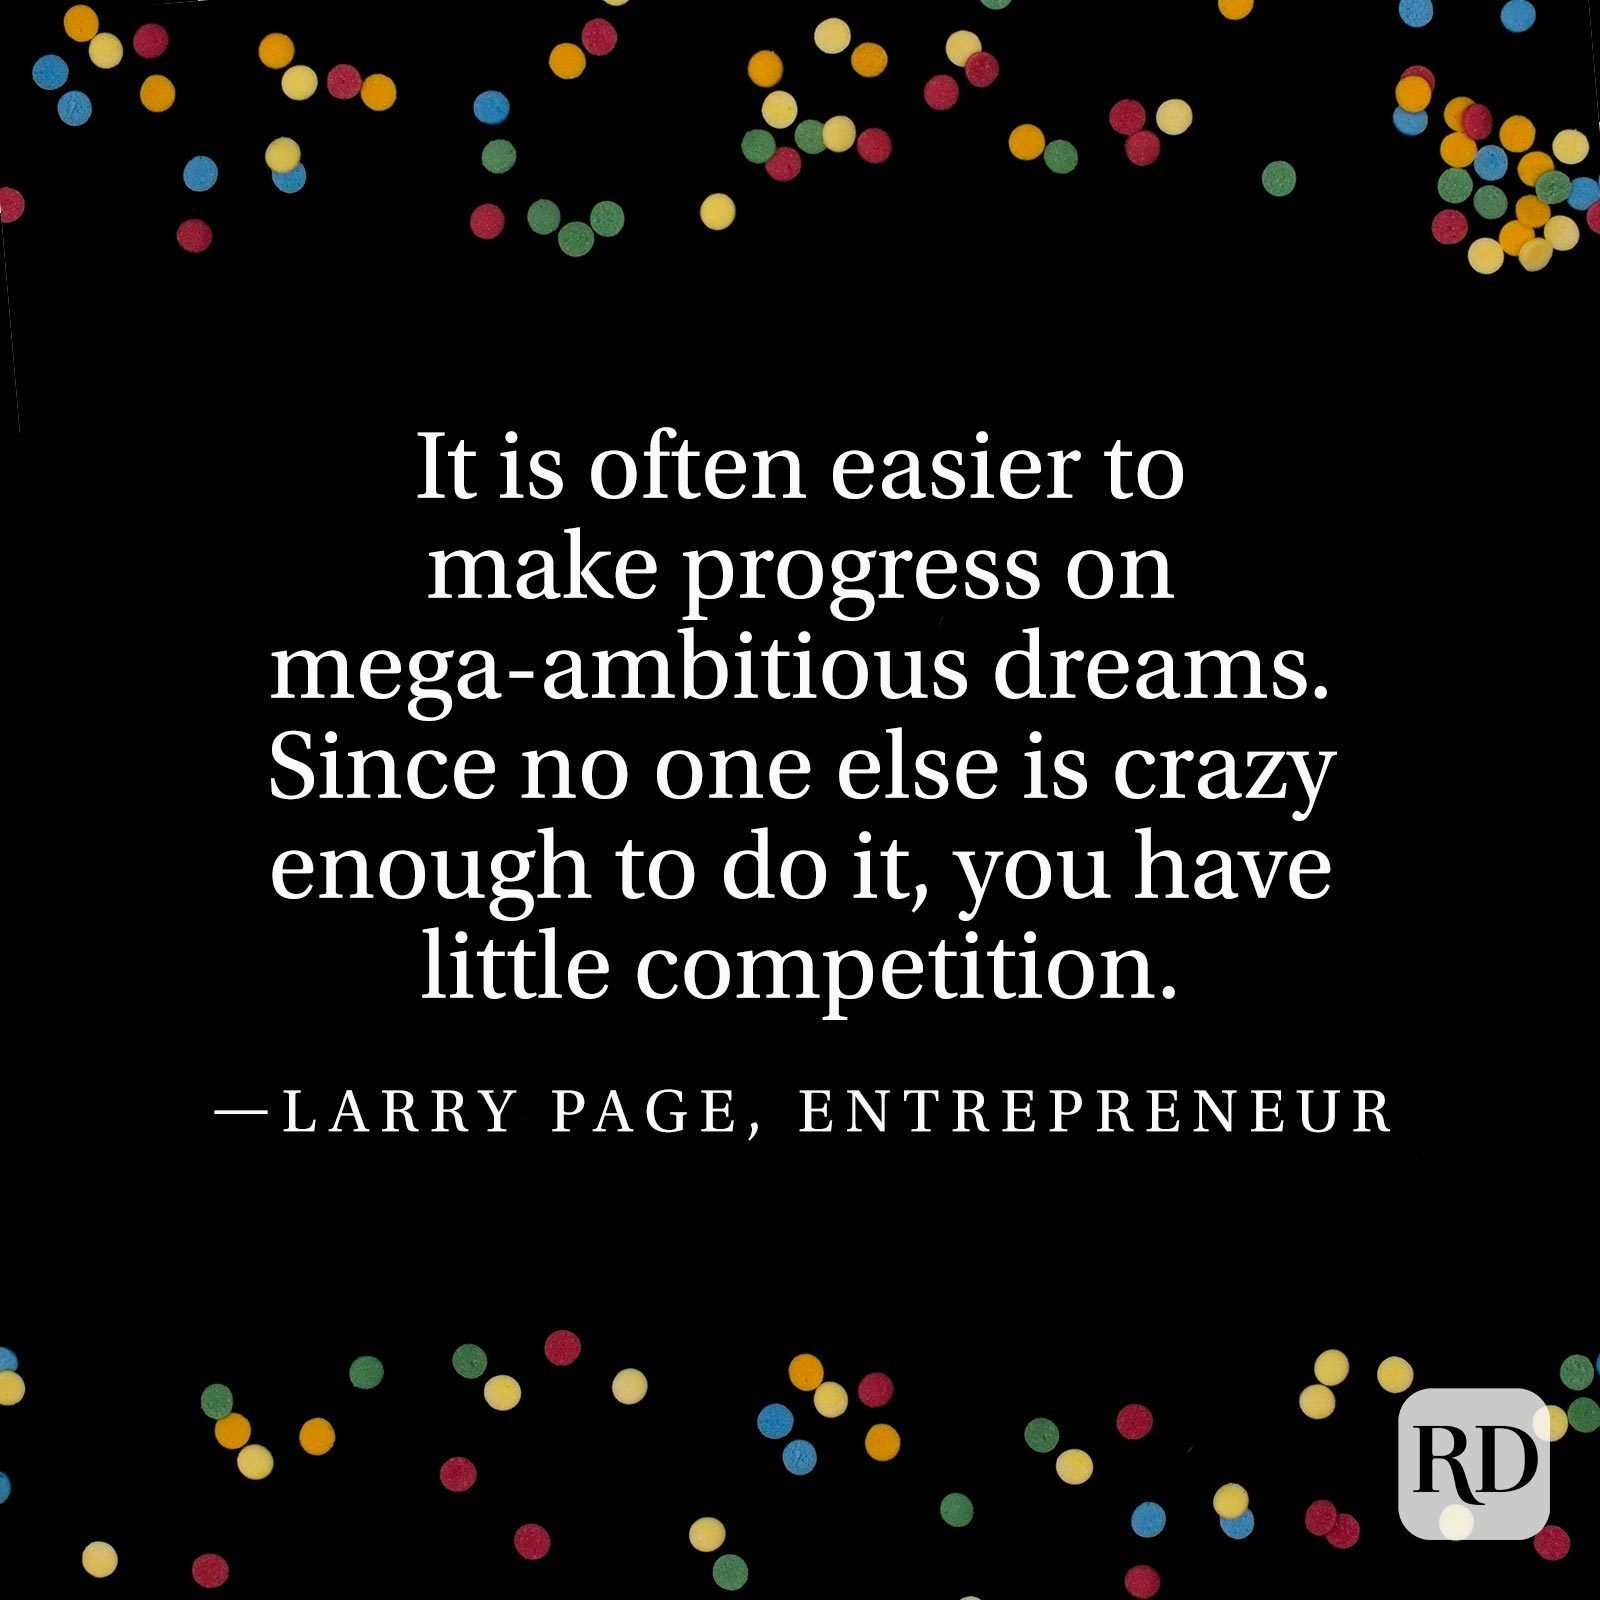 """""""It is often easier to make progress on mega-ambitious dreams. Since no one else is crazy enough to do it, you have little competition."""" —Larry Page, entrepreneur"""